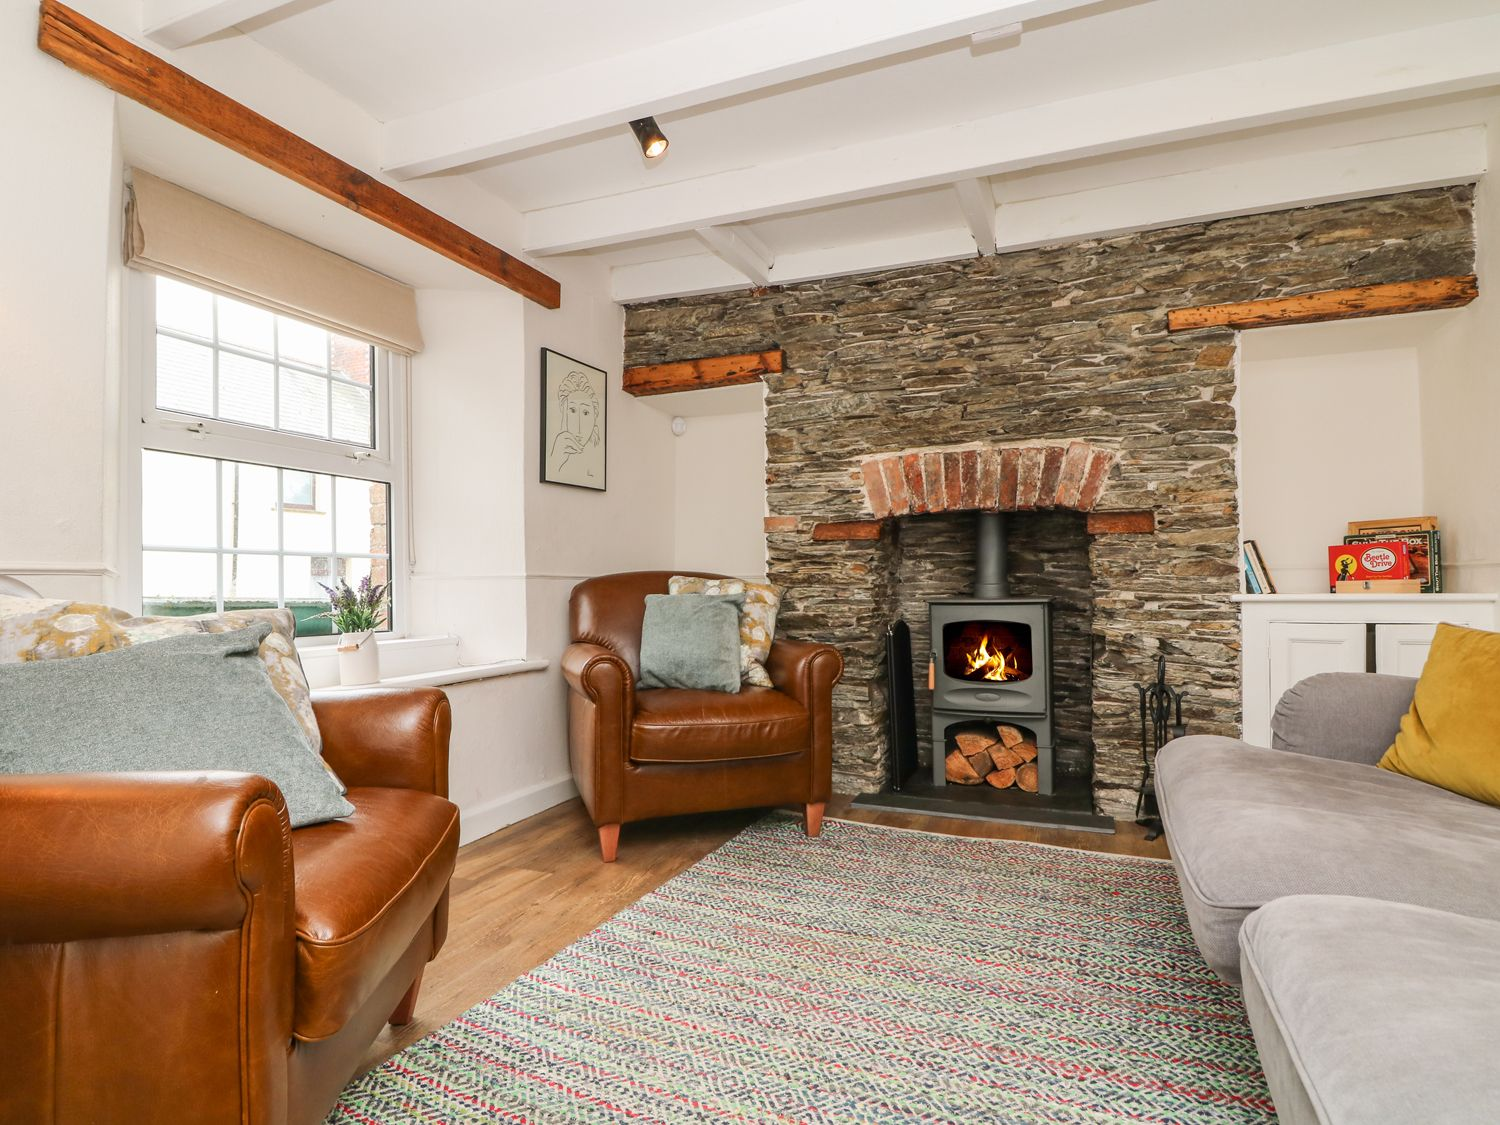 Gwent Cottage, Near Padstow, Padstow, Cornwall